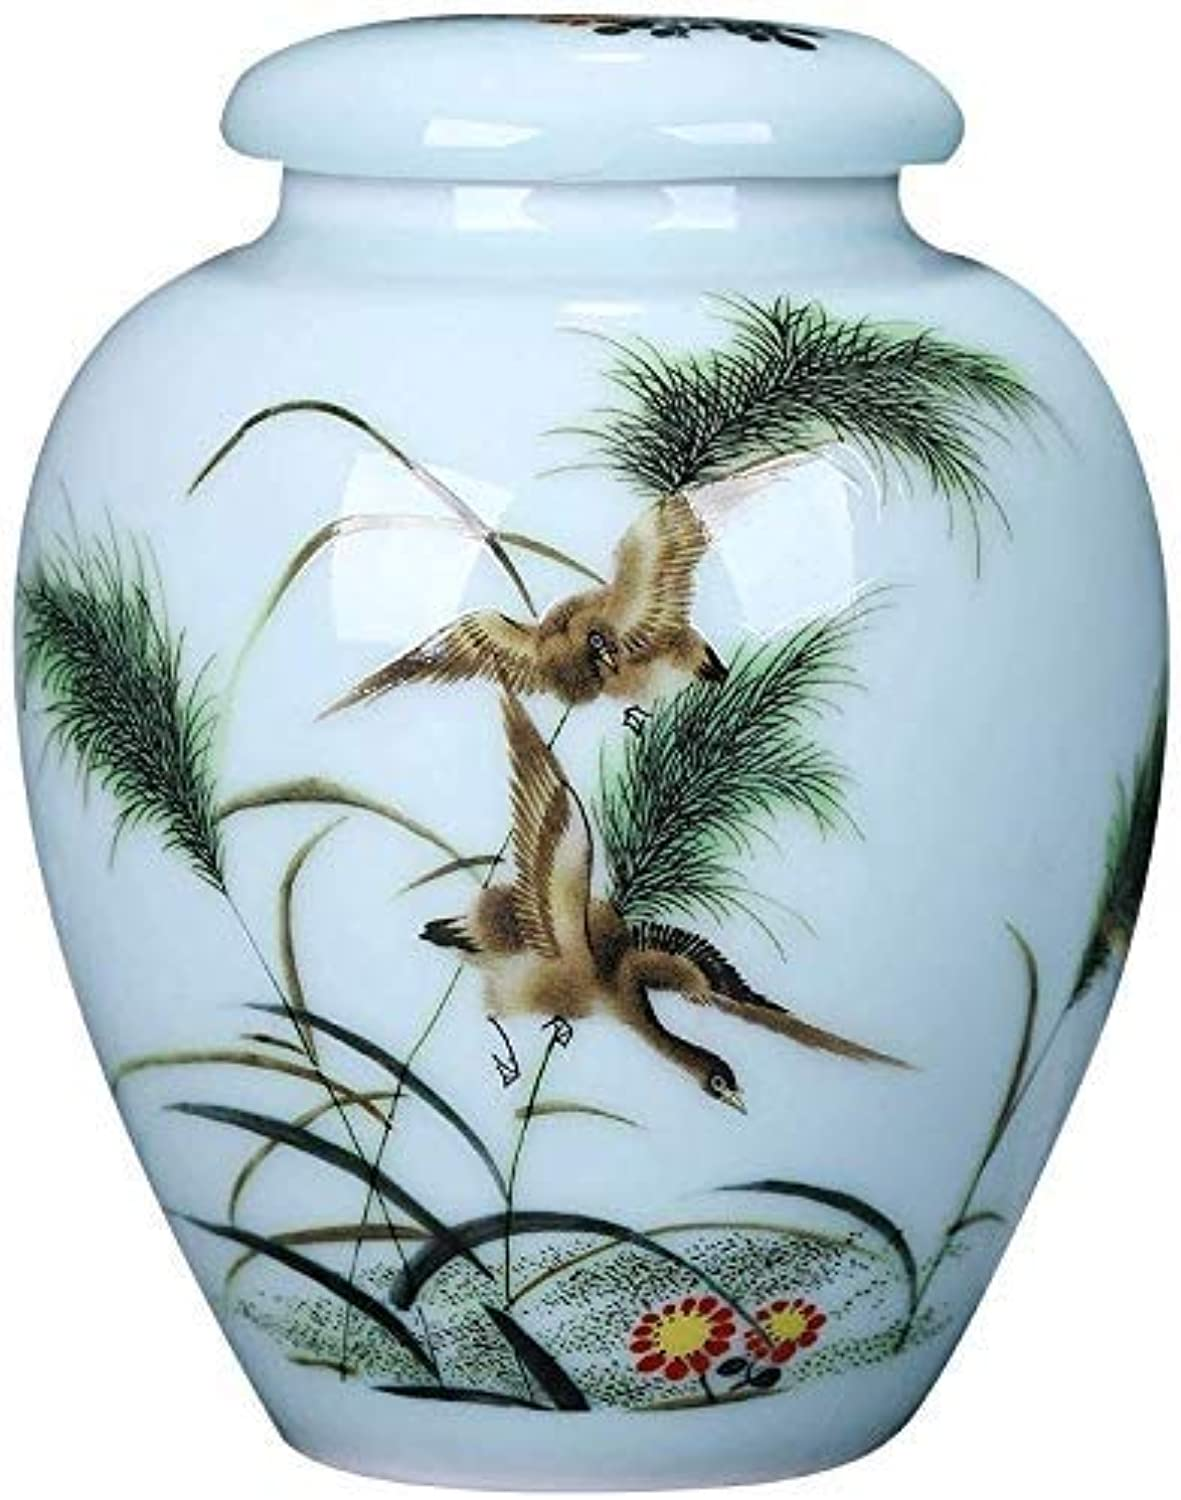 RMXMY Funeral Urn Adult Ashes, Cremation Urns for Human Ashes Adult Made in Ceramics and HandPainted Display Burial Urns At Home or in Niche